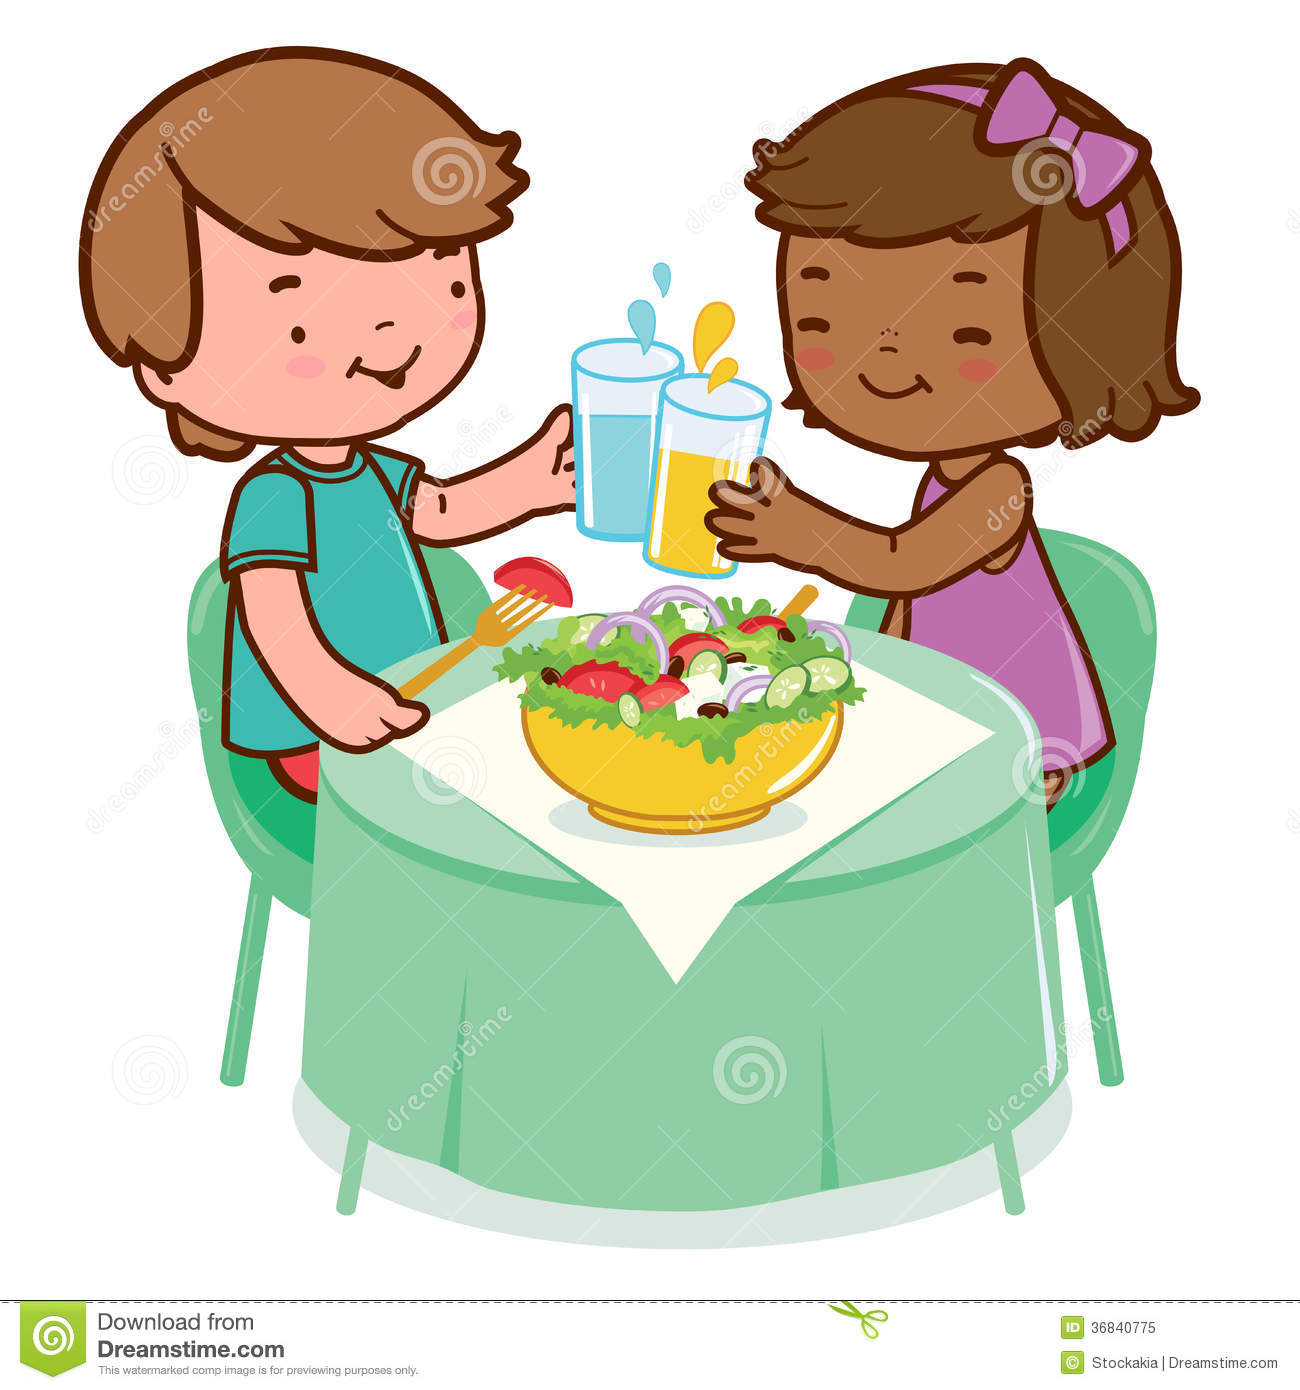 Children Eating Healthy Food Stock Vector Illustration Of Kids Meal 36840775